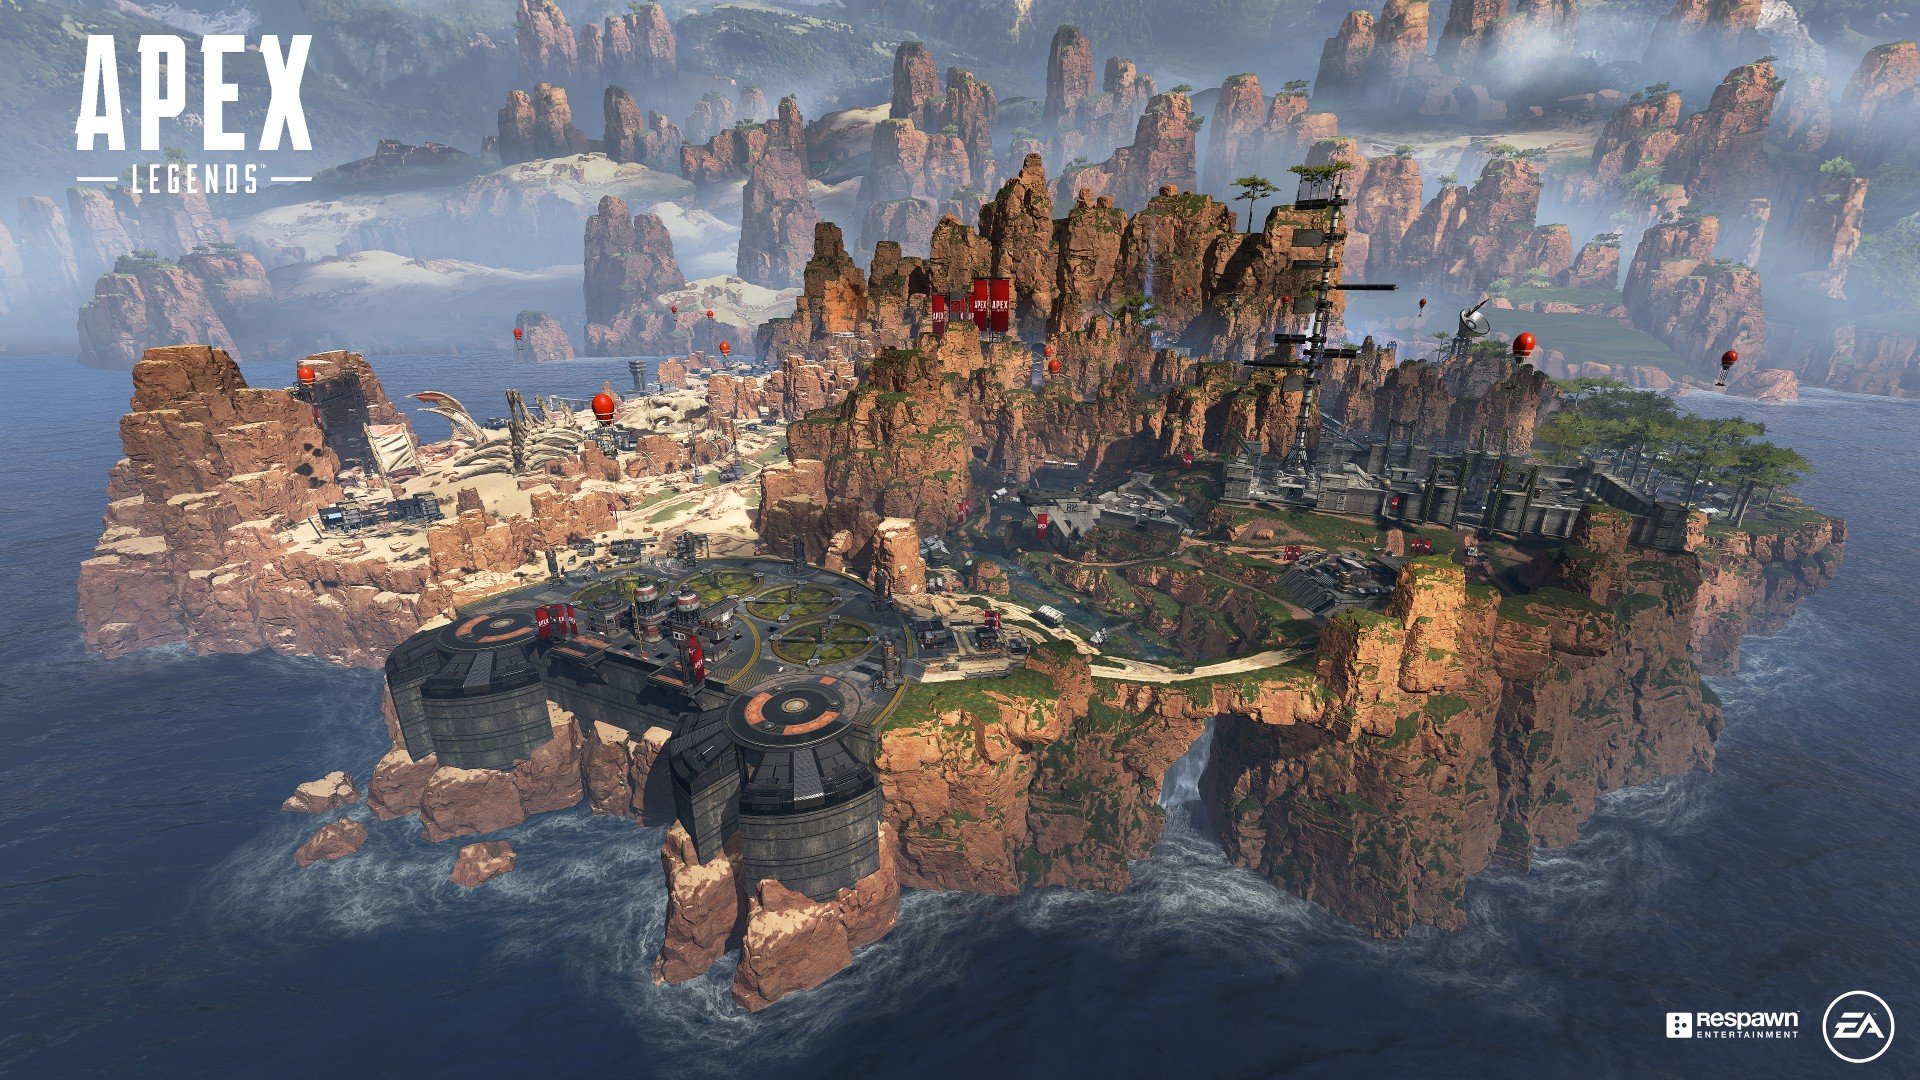 As of right now, there is no cross-platform support available in Apex Legends.